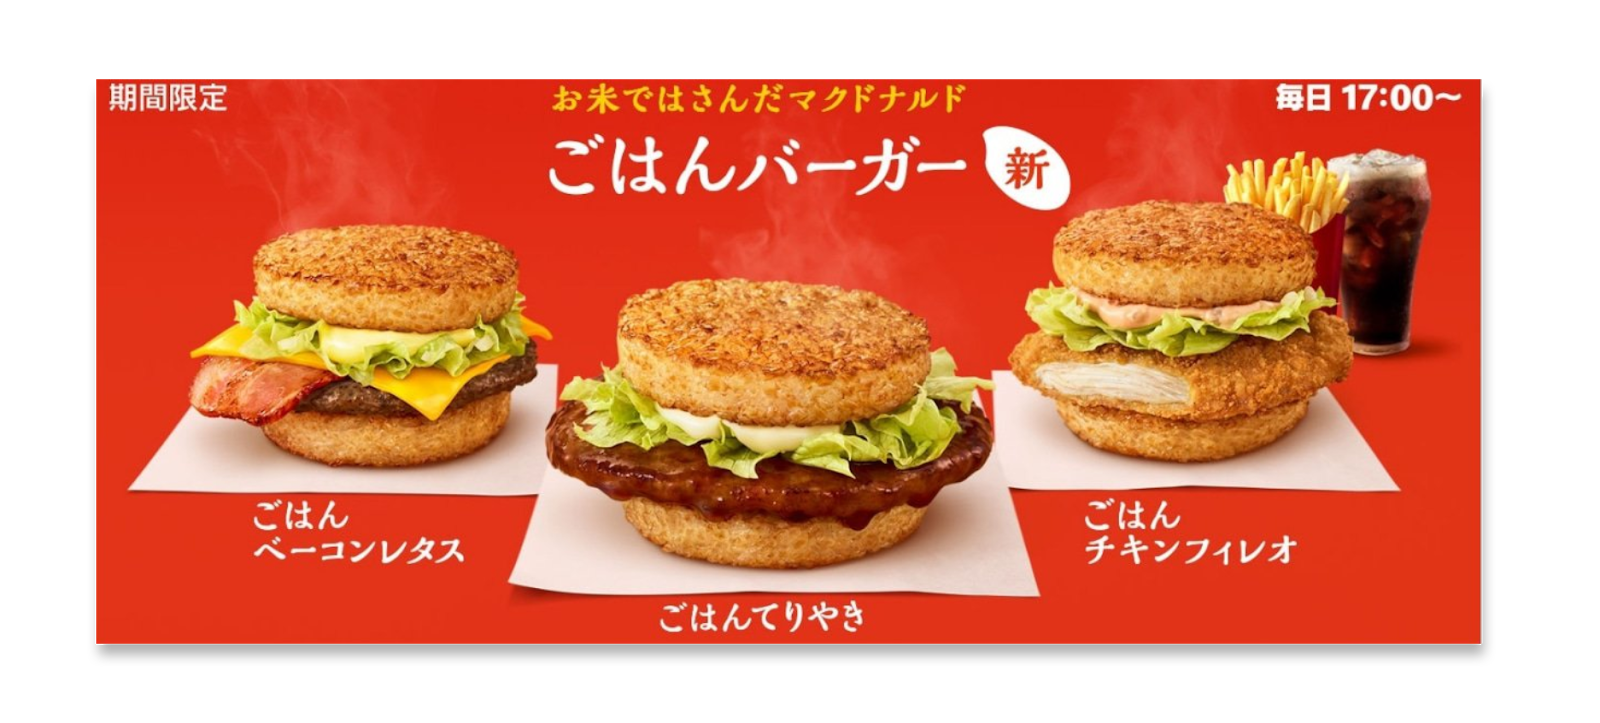 This image has three burgers laid out is a triangle format so the middle one is a little more forward from the two on either side of it. The left burger is a bacon burger, the middle is a classic burger, and the right burger is fried chicken. All the burger have rice patties for buns. This add was for McDonald's Japanese audience.